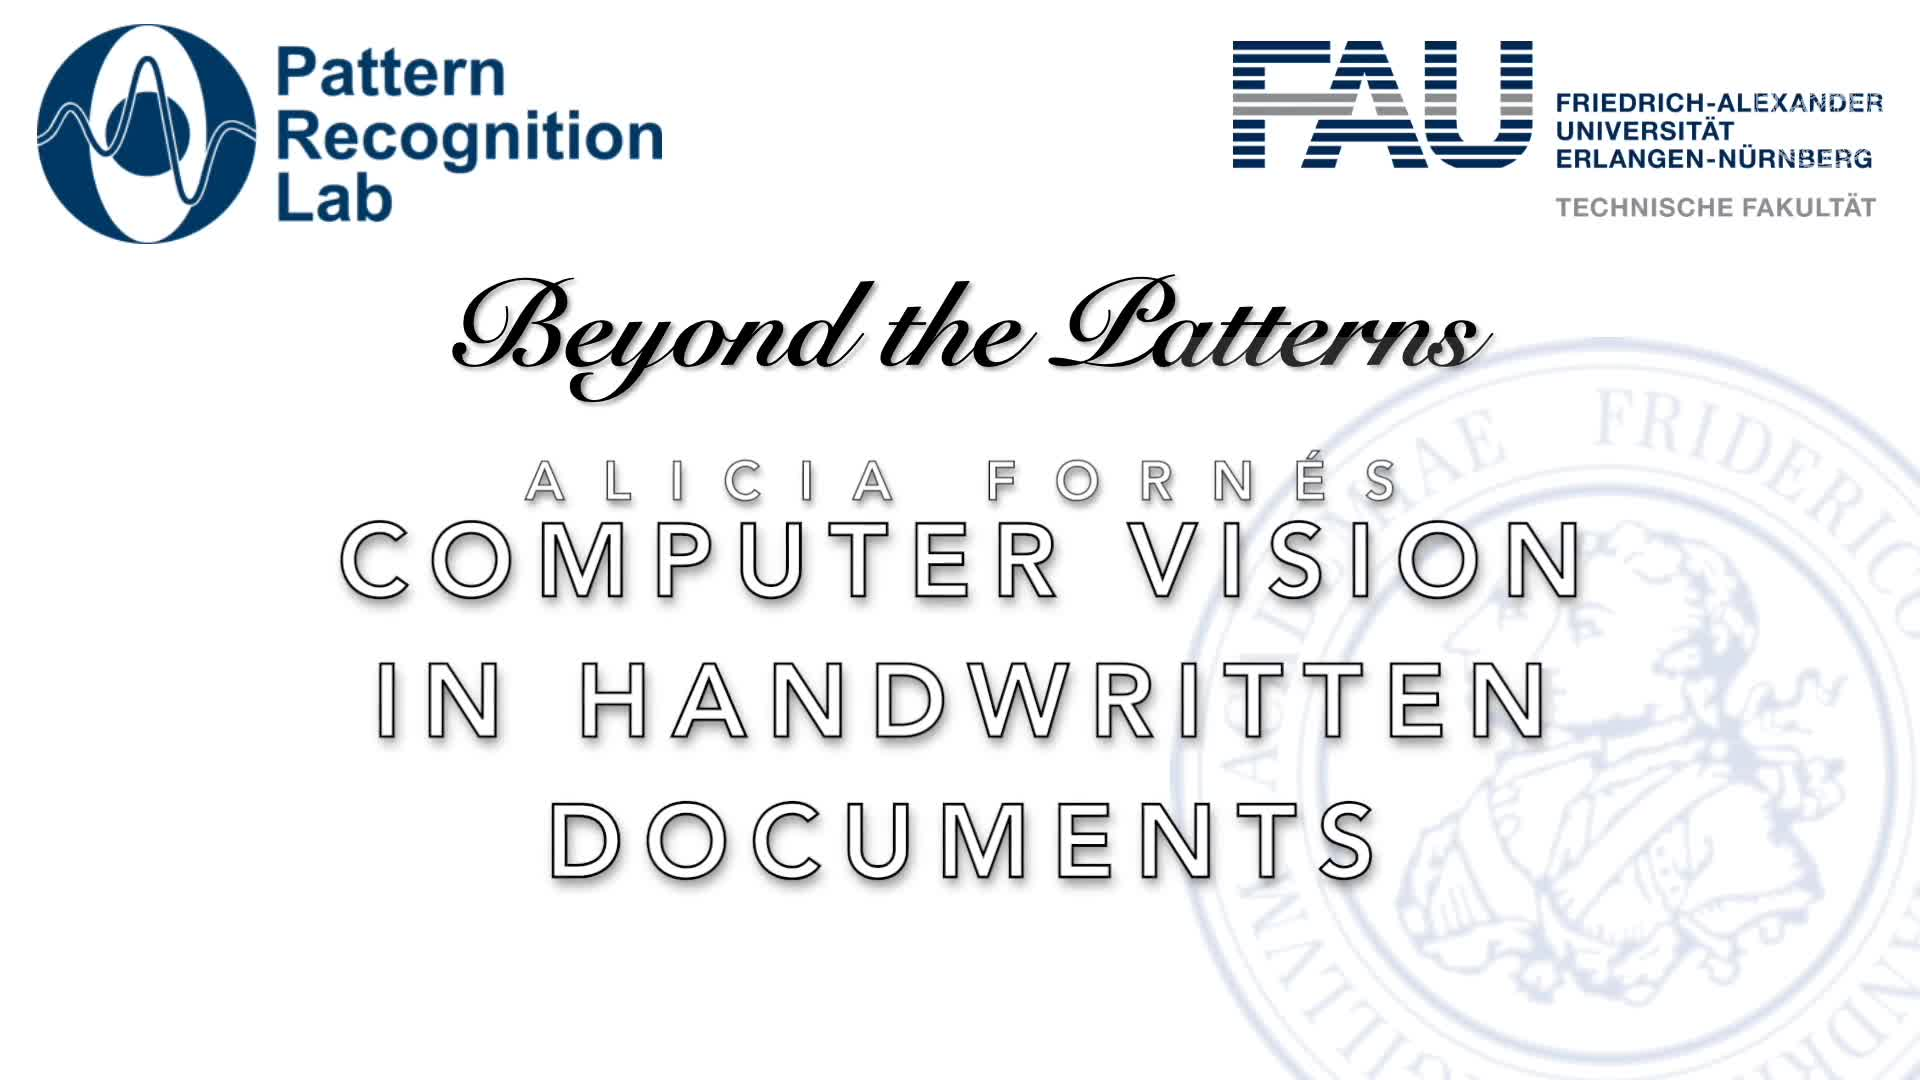 Beyond the Patterns - Alicia Fornés - Computer Vision for Handwritten Document Analysis preview image